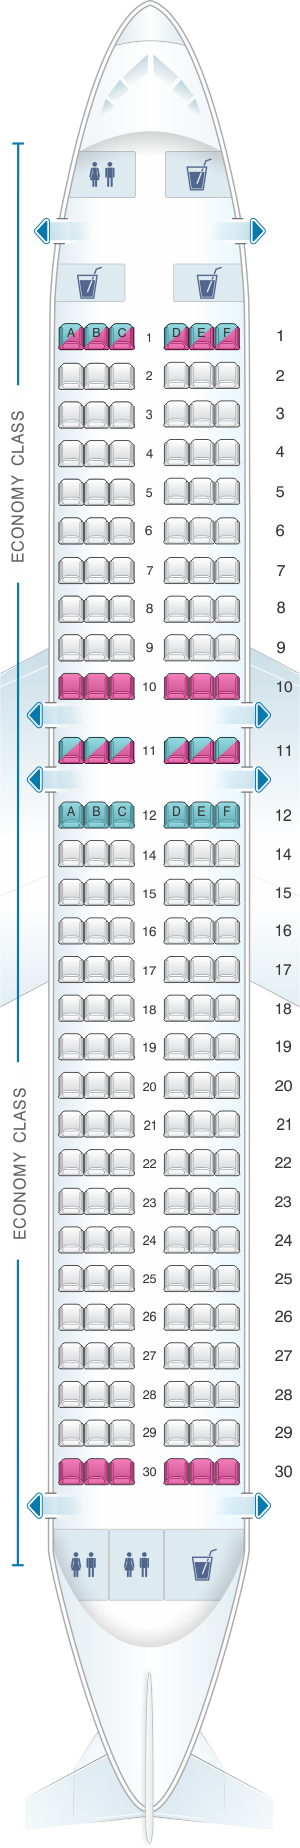 Seat map for Scandinavian Airlines (SAS) Airbus A320neo